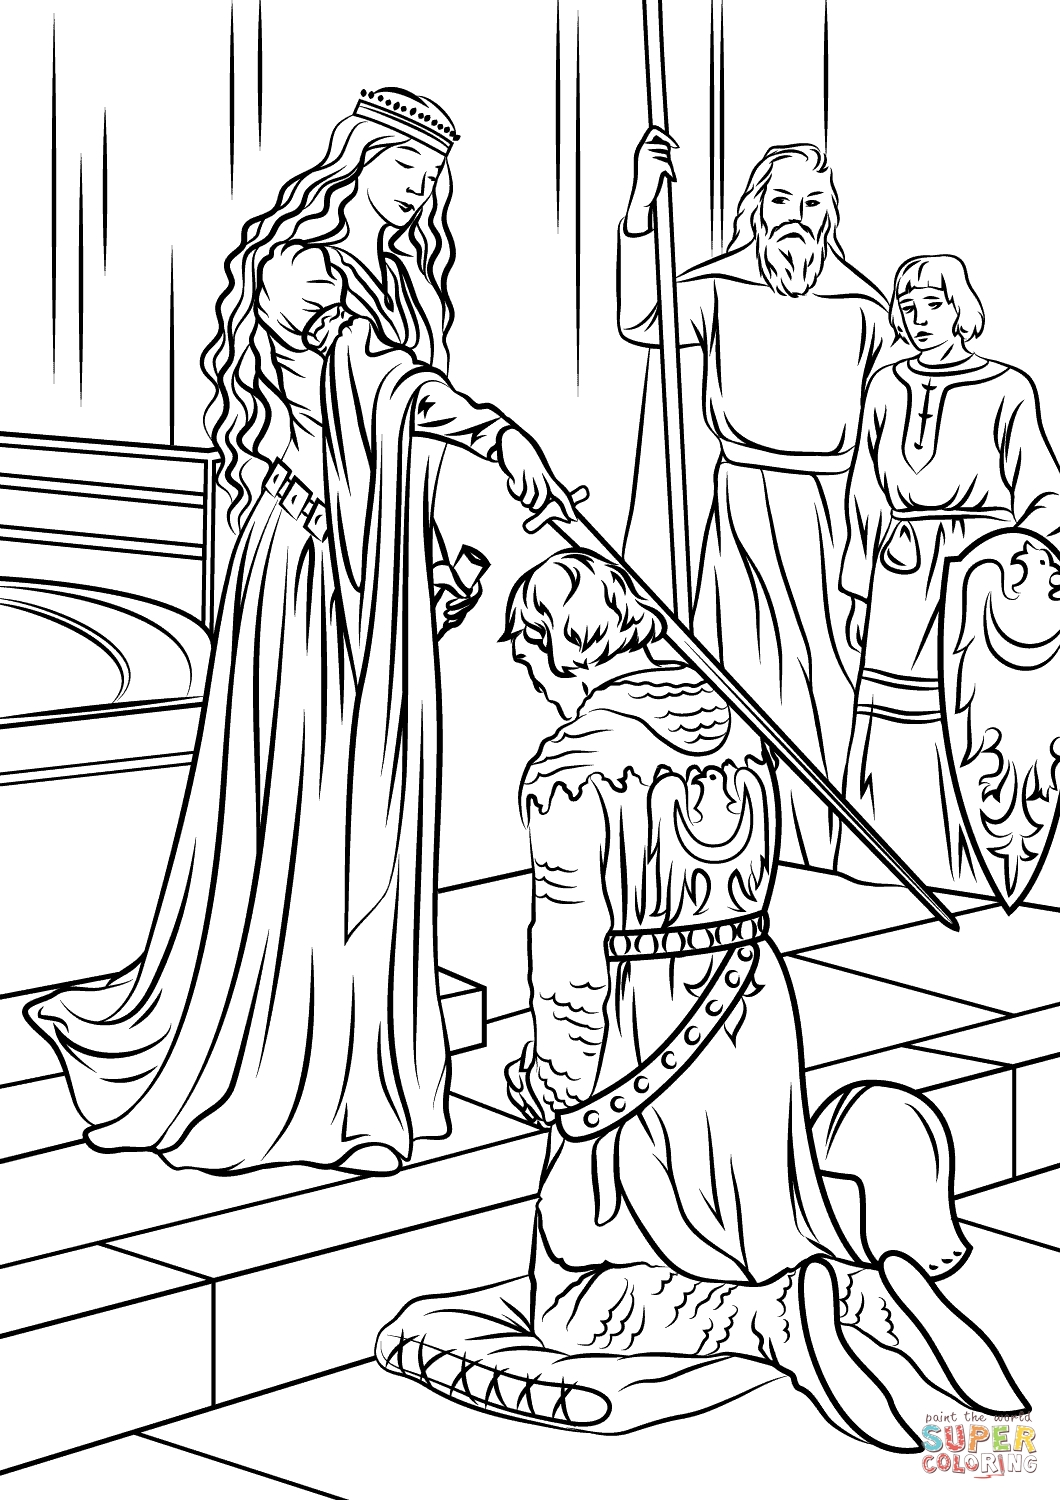 1060x1500 Fresh Praying Hands Coloring Page Coloring Pages Free Coloring